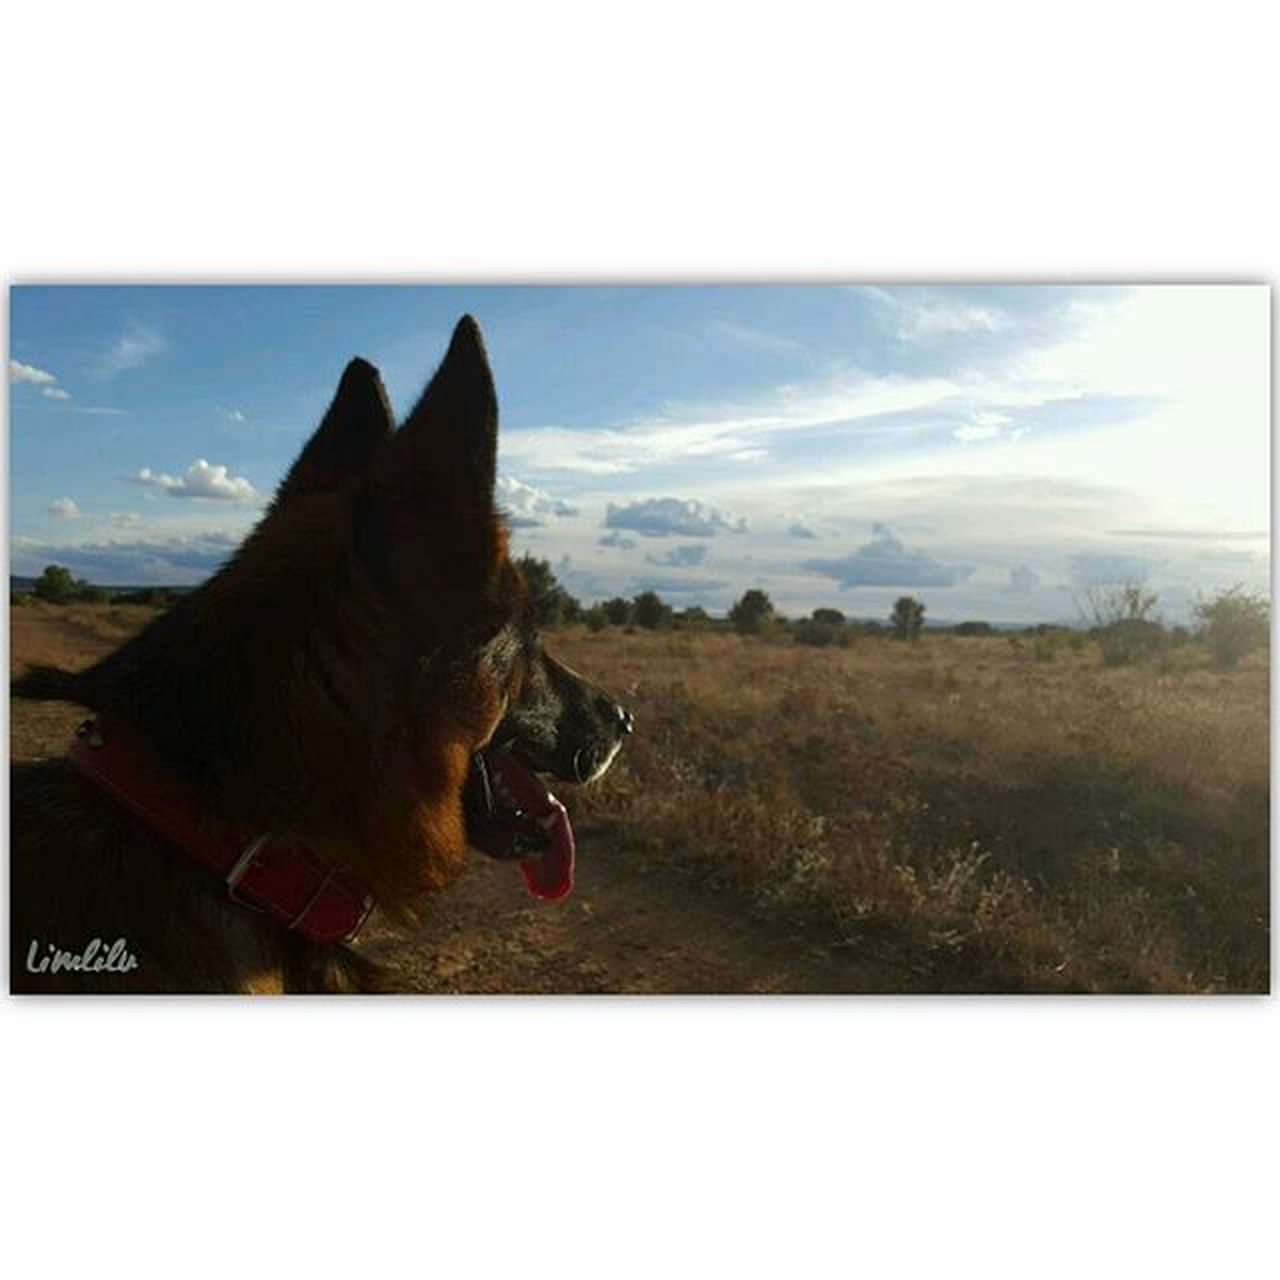 Currete 💕 🐾 Leon LaBañeza Vacaciones Estoesvida Be_one_natura Loves_world TodoEs_Animales Igersspain SPAIN Ig_spain Descubriendoigers @Instagramers Estaes_de_todo Estaes_animal EstaEs_Universal_4 Ke_animal Pets_of_our_world World_bestanimals Ir_Animal Loves_Animal PastorAleman Perros  Perrosdeinstagram Dogsofinstagram Mascotas Mascoteros PonunPerroentuVida PonunaMascotaentuVida CurreteGrande